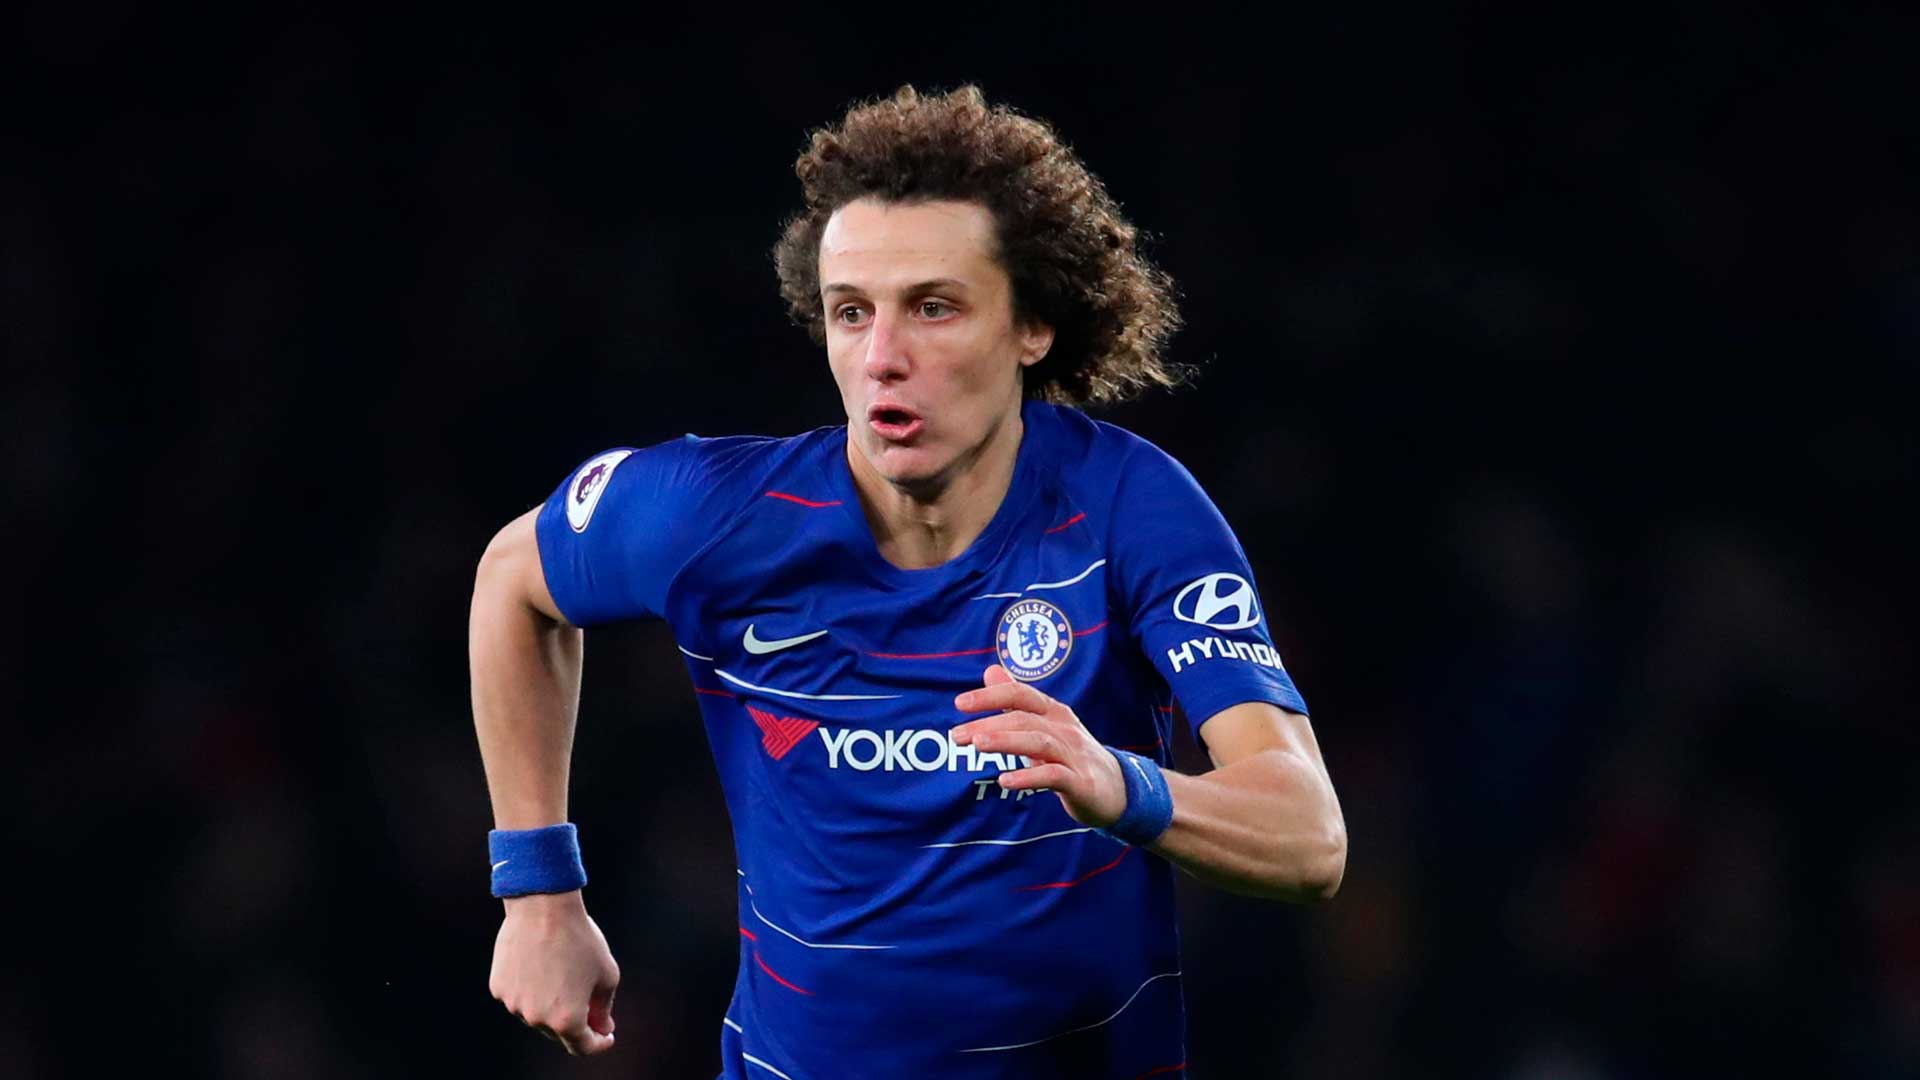 Chelsea star insists team is behind Sarri despite tough run